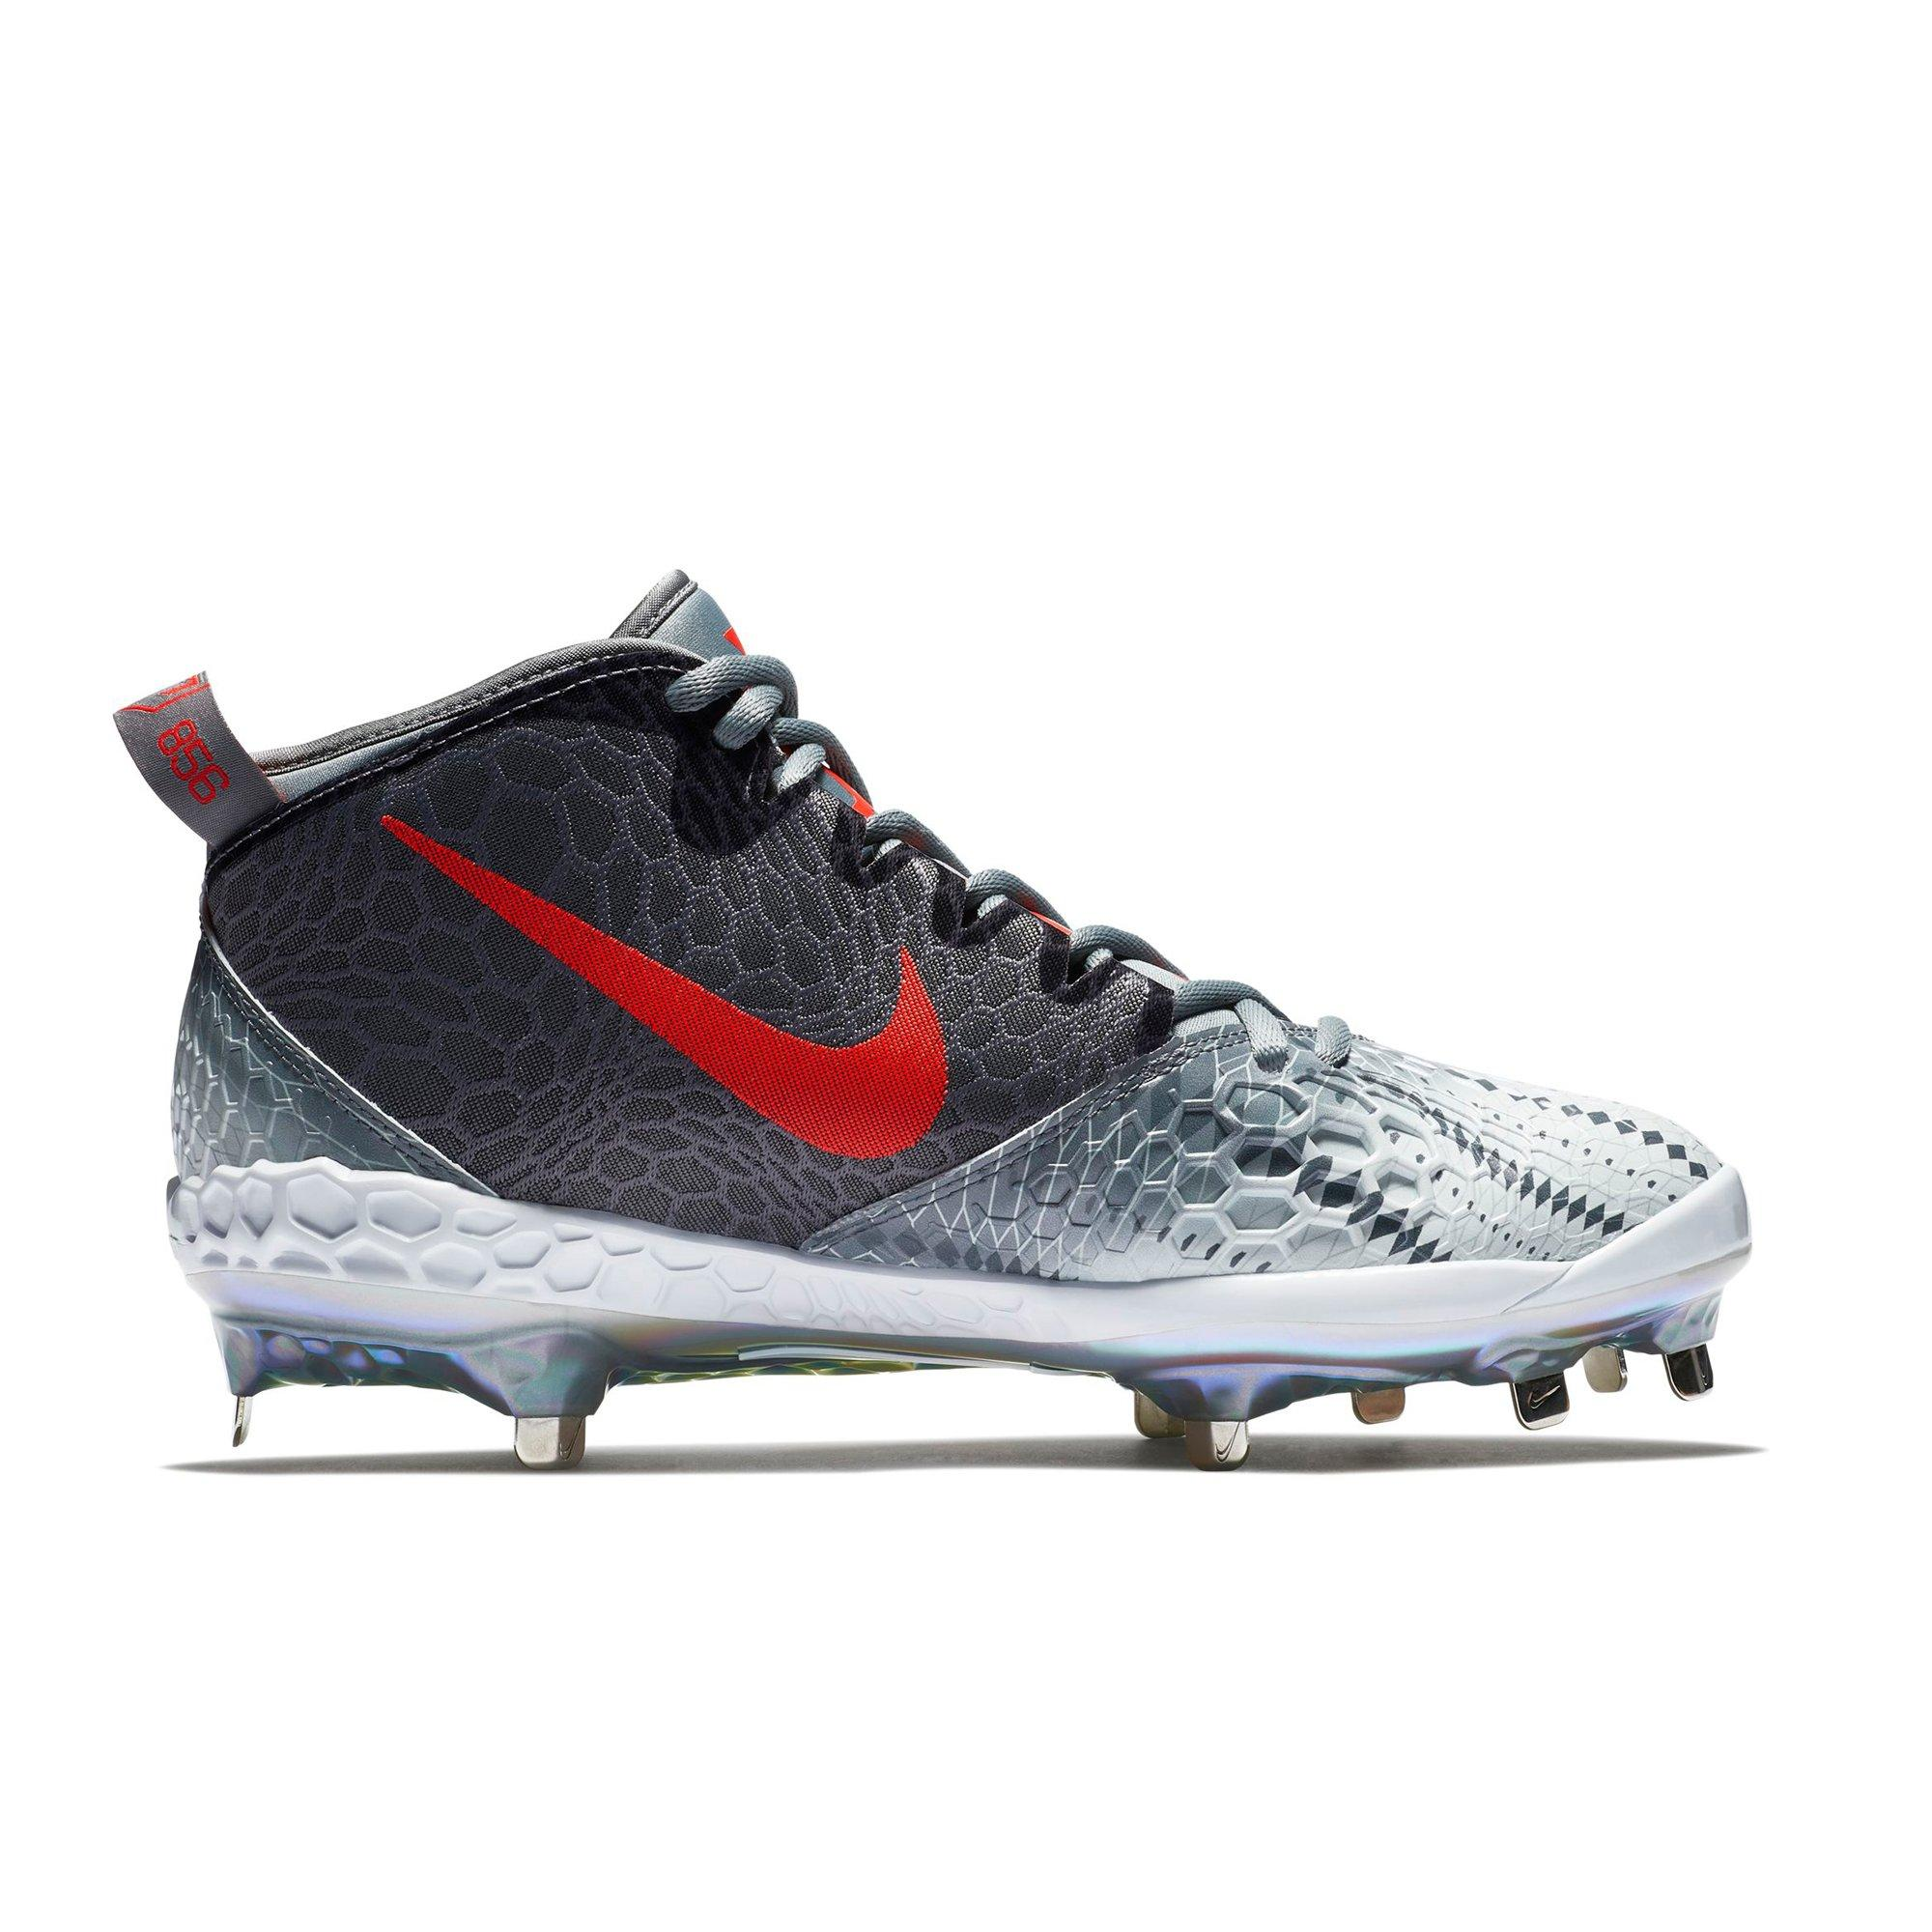 release date 15f3e 8dcf6 nike air replacement baseball cleat